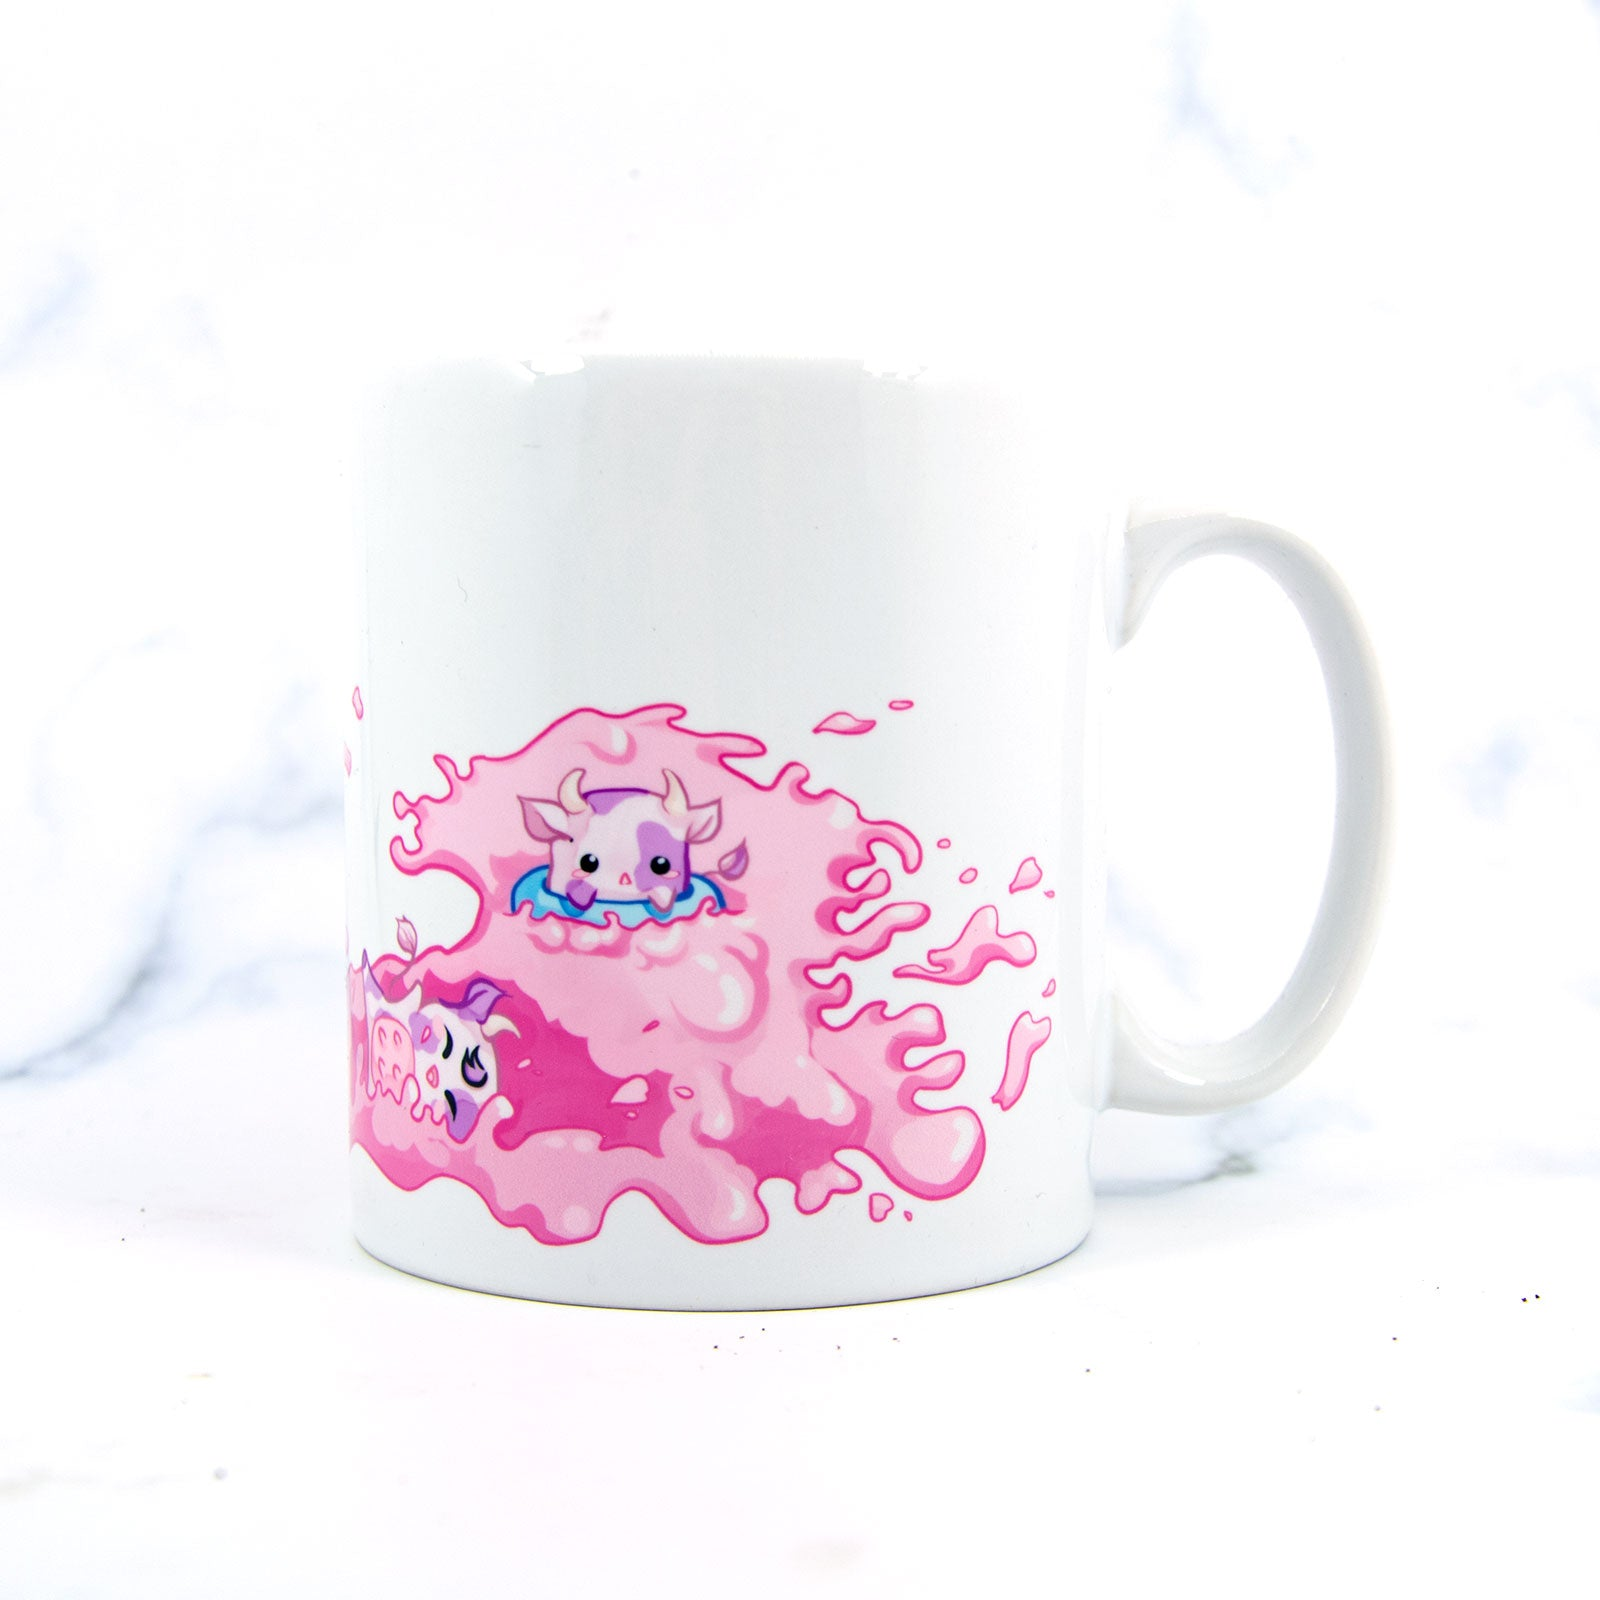 Strawberry milk cows mug